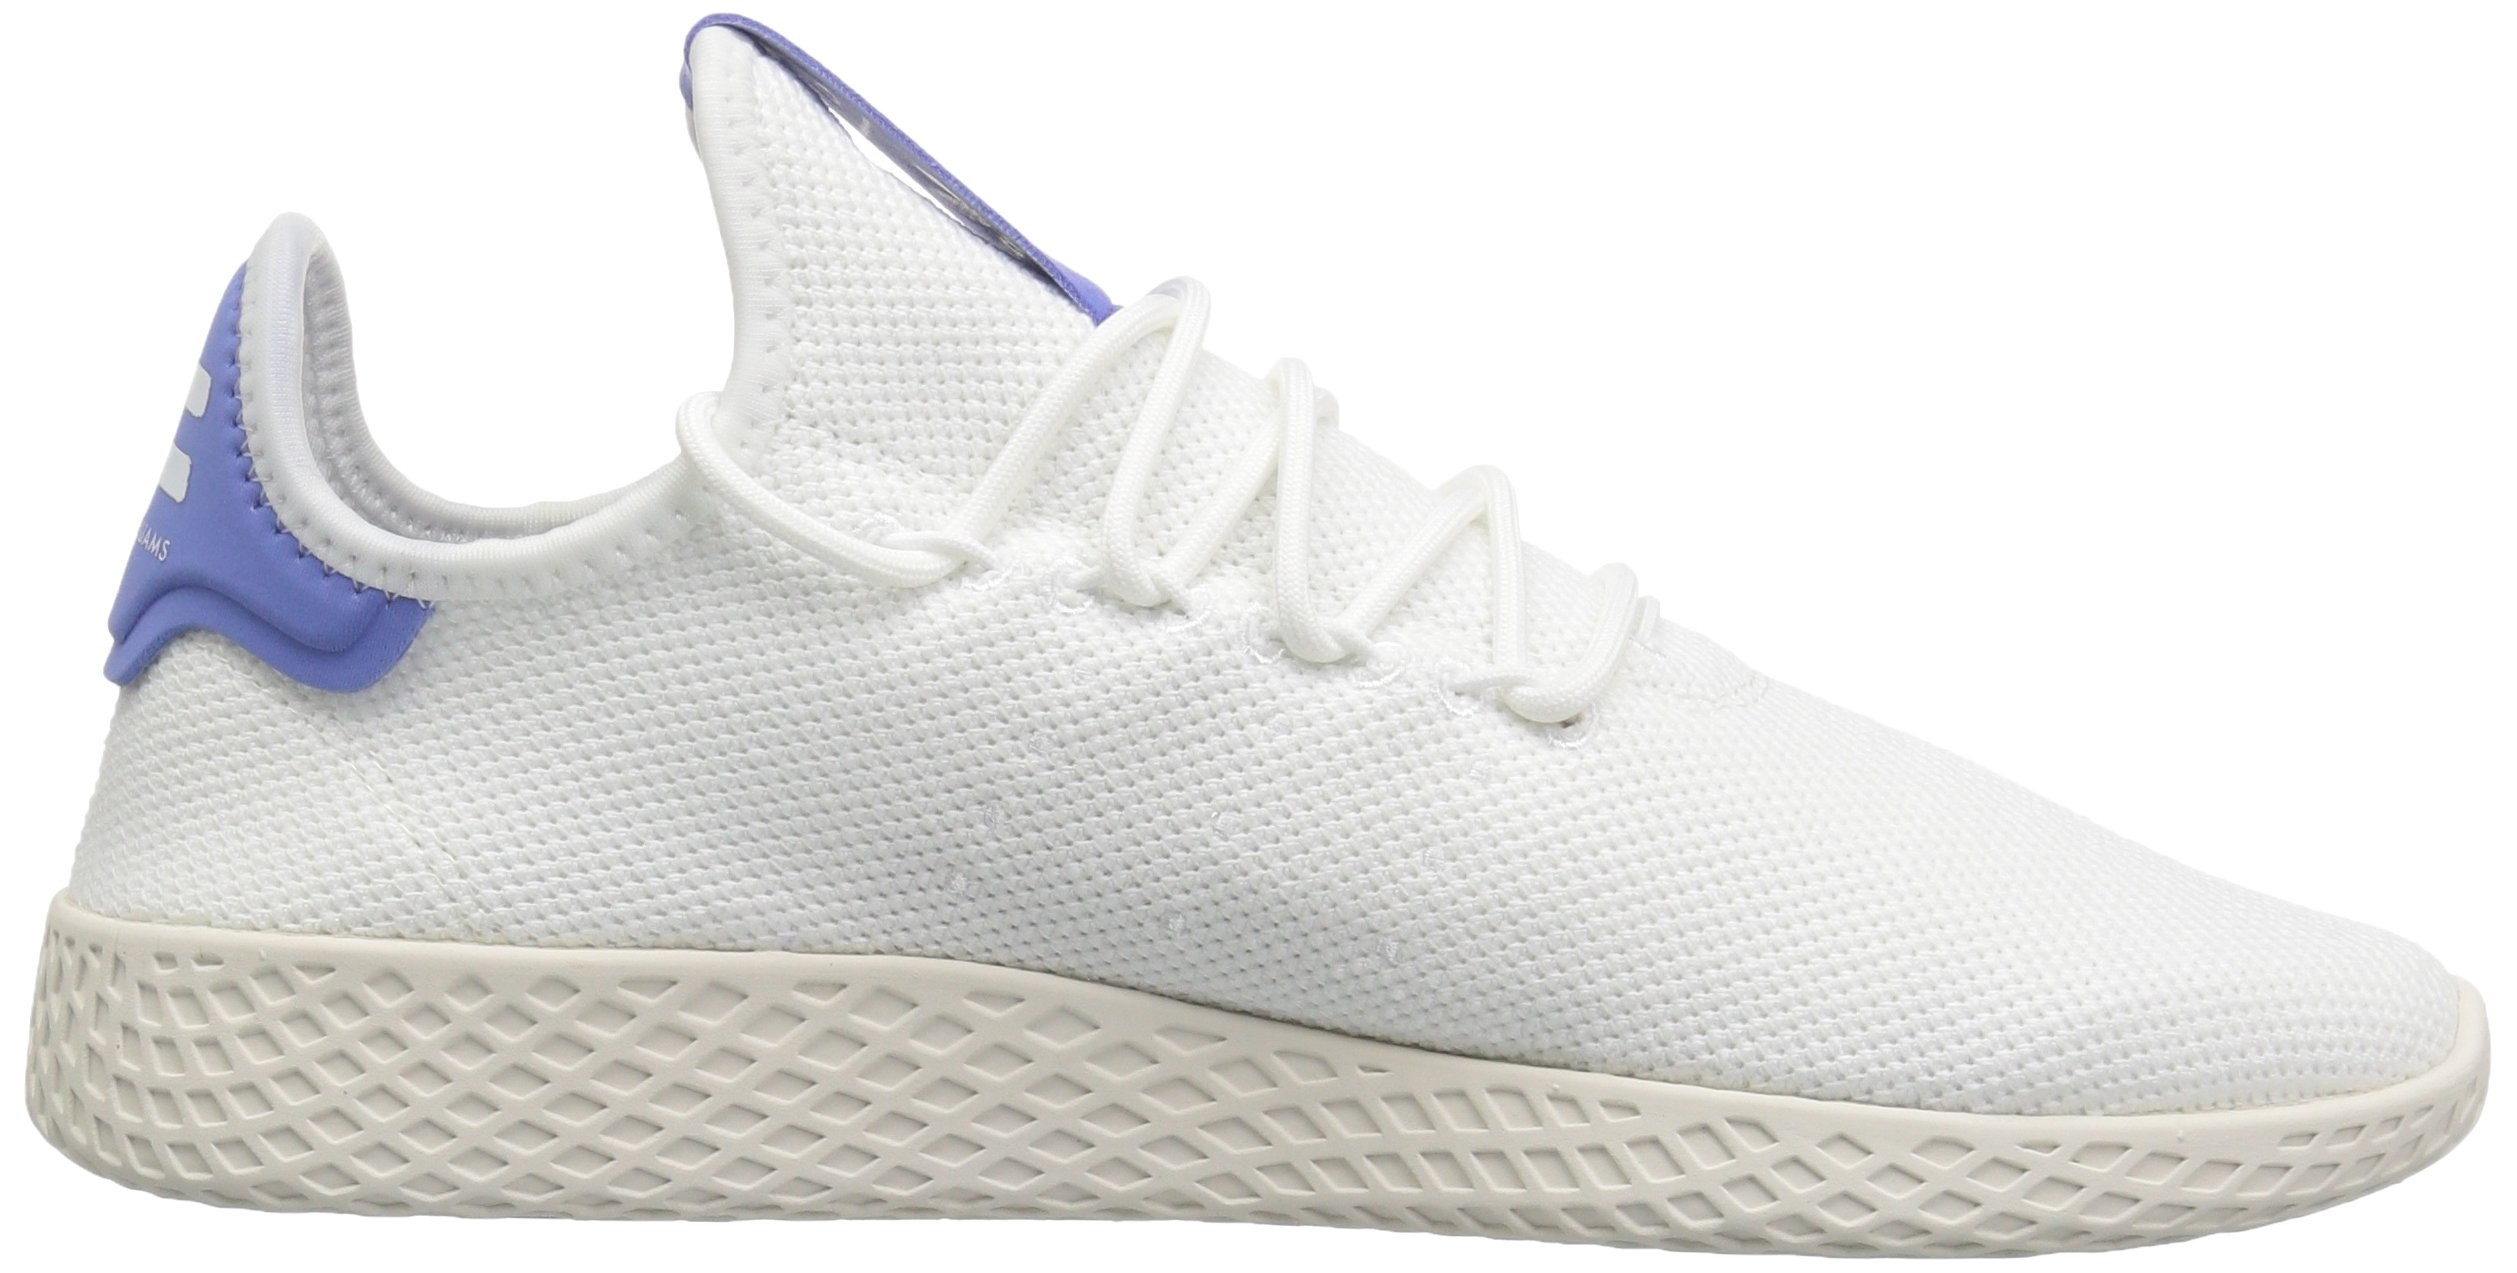 adidas Originals Men's Pharrell Williams Tennis HU Running Shoe, White/Chalk, 5.5 M US by adidas Originals (Image #6)